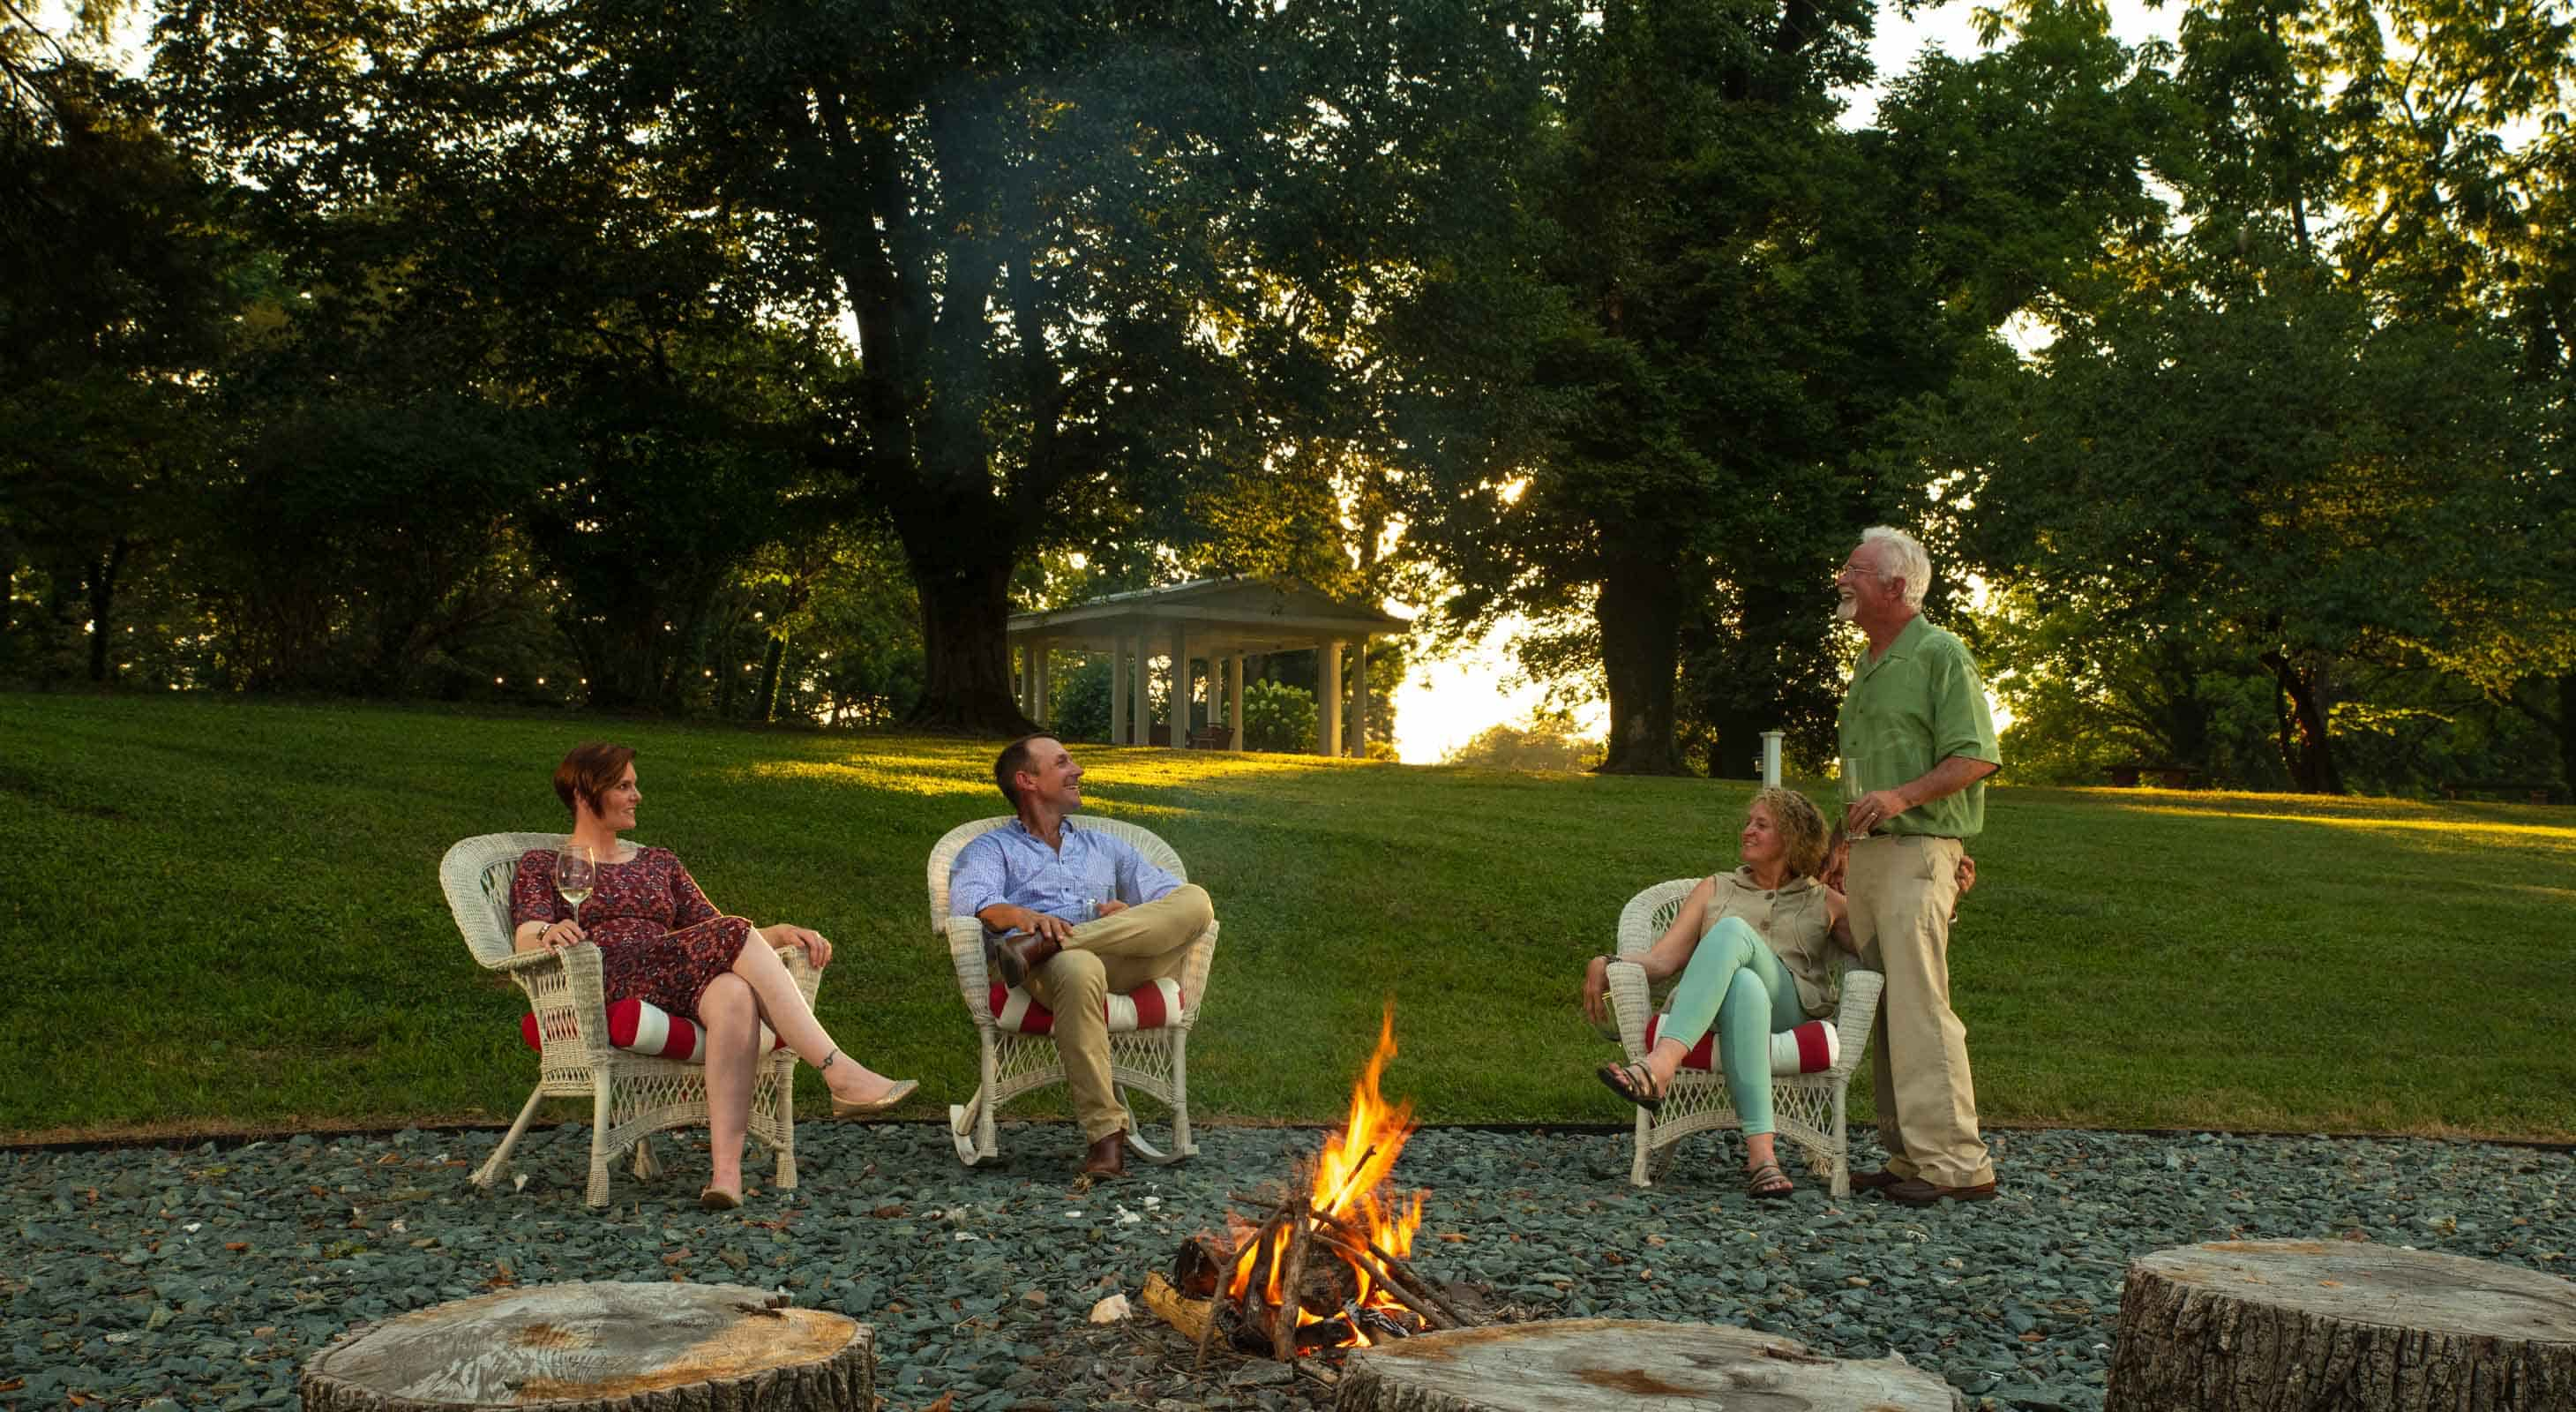 A group of people hanging out by a firepit